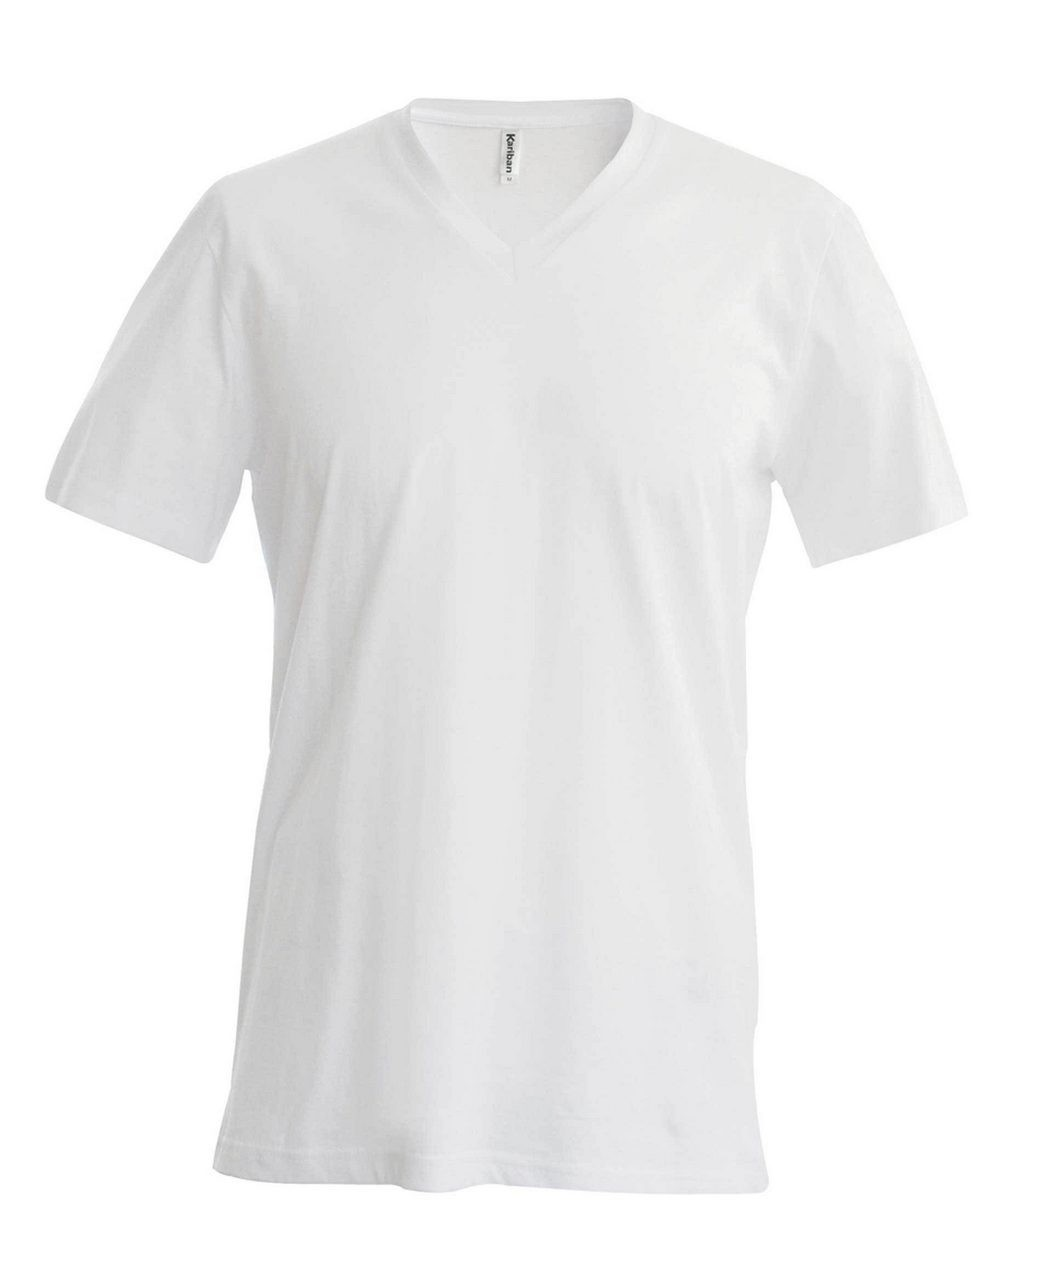 94d34336fa Kariban V-neck T-shirt, White, 4XL (T-shirt, 90-100% cotton ...